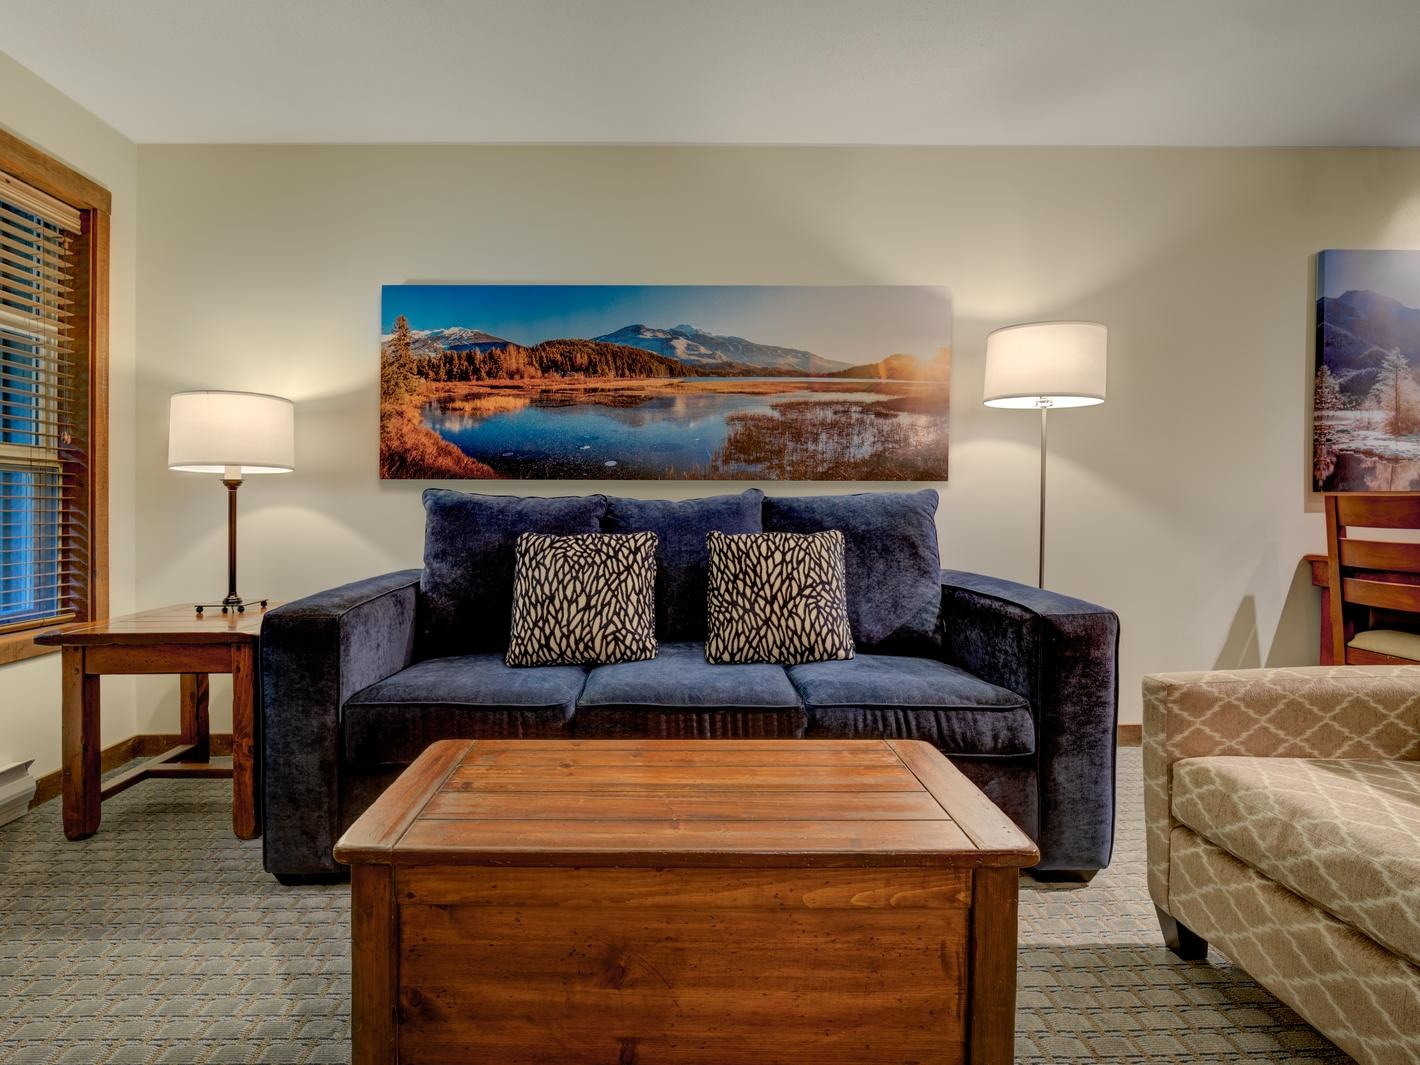 living room with blue couch and wooden table